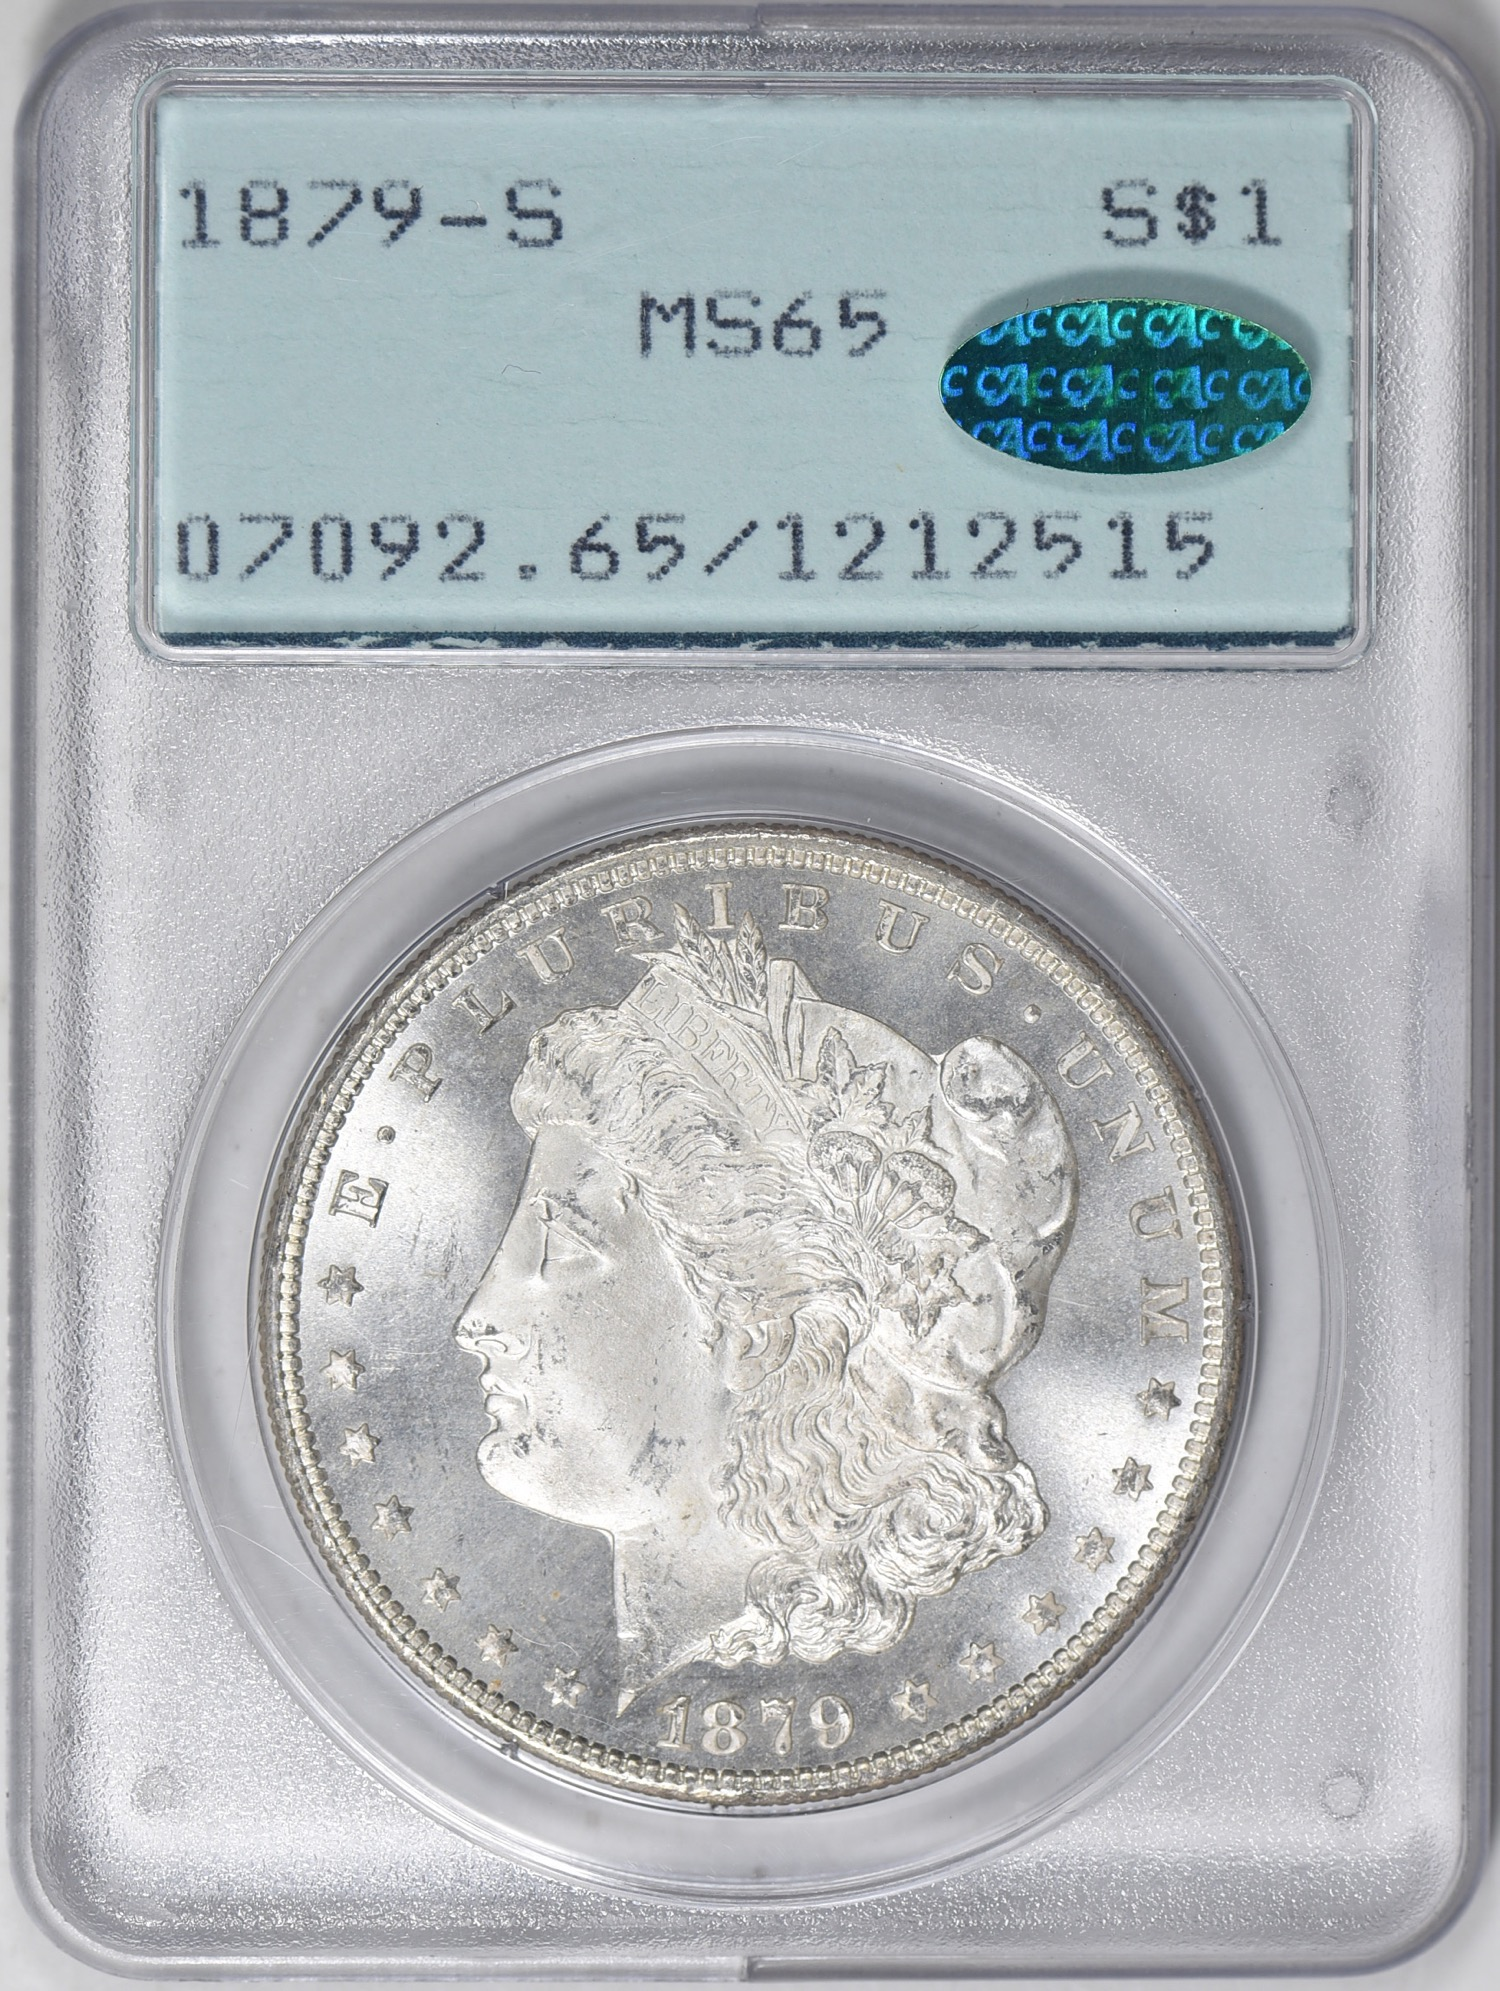 1879-S MS65 CAC OGH (1st Gen) - Acquired 2.24.19 GreatCollections. Another Morgan for the Gem CAC OGH collection. No CC Morgan registry set started yet and probably never will as there are some coins required that go for over $10k in AU and that is without any in PL and DMPL designations